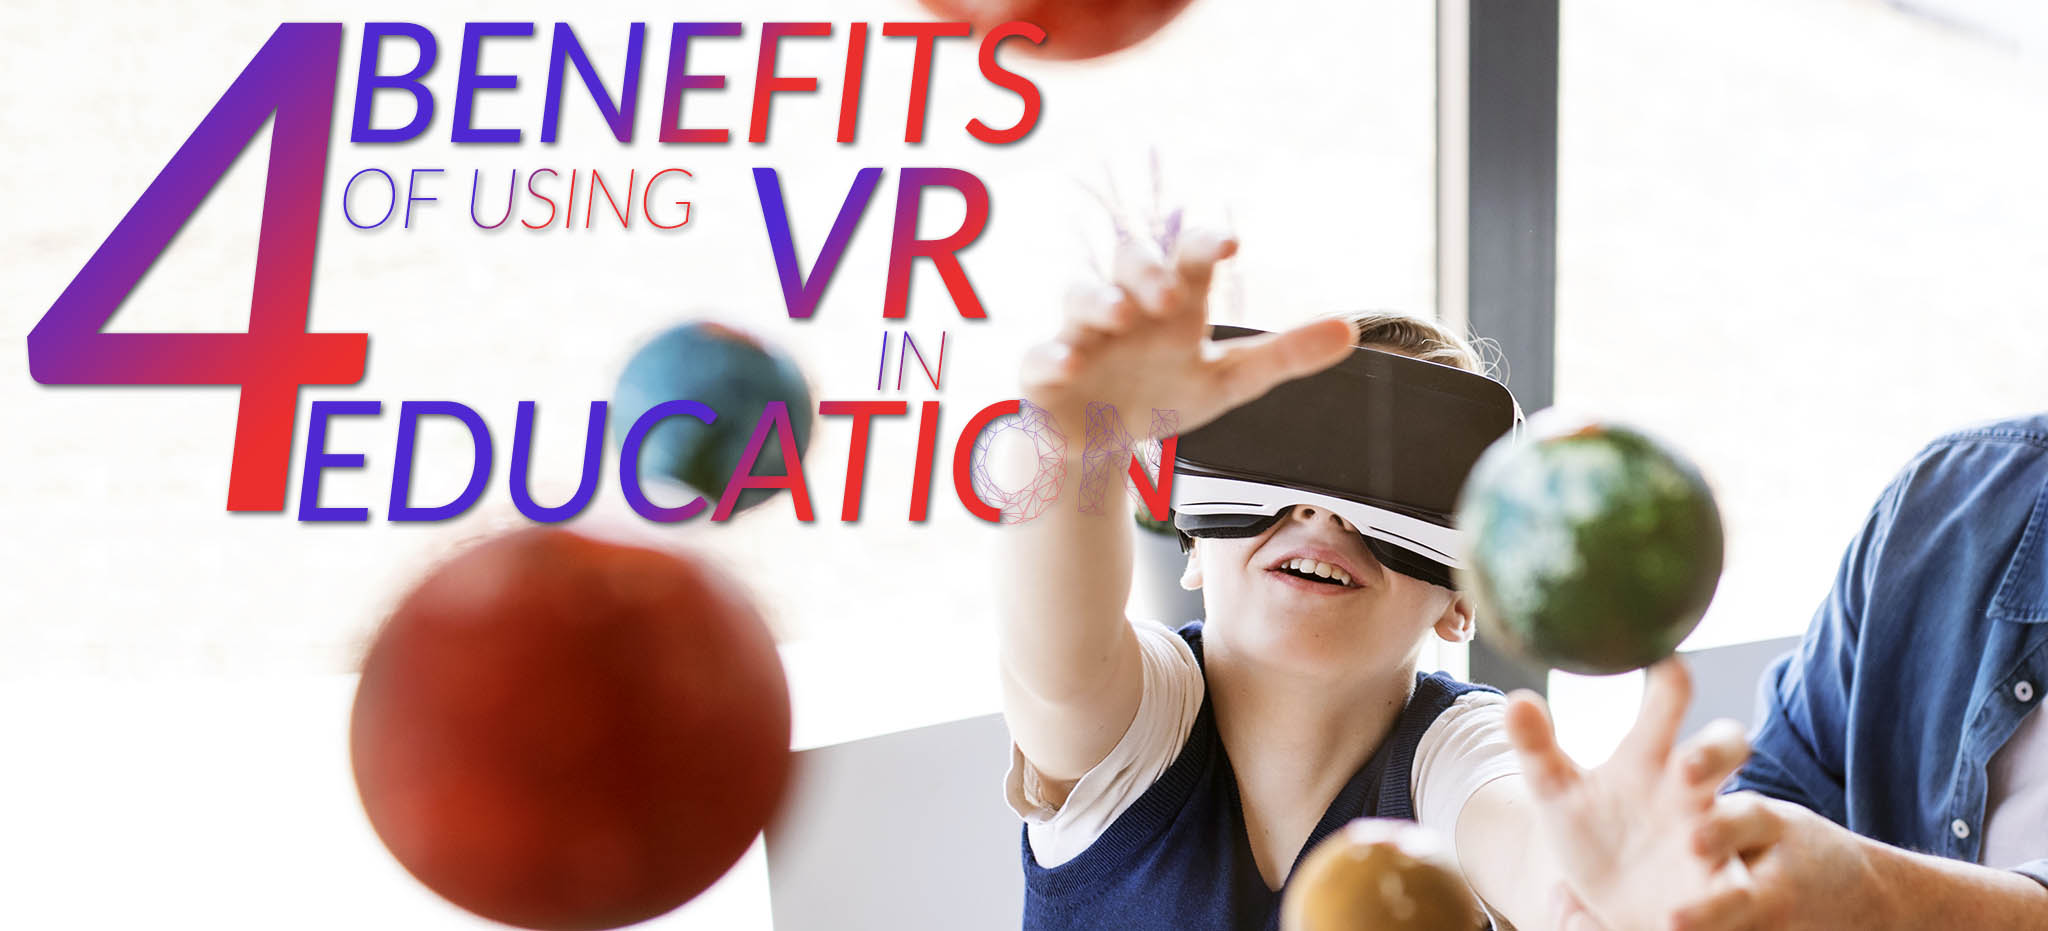 4 Benefits of VR in Education